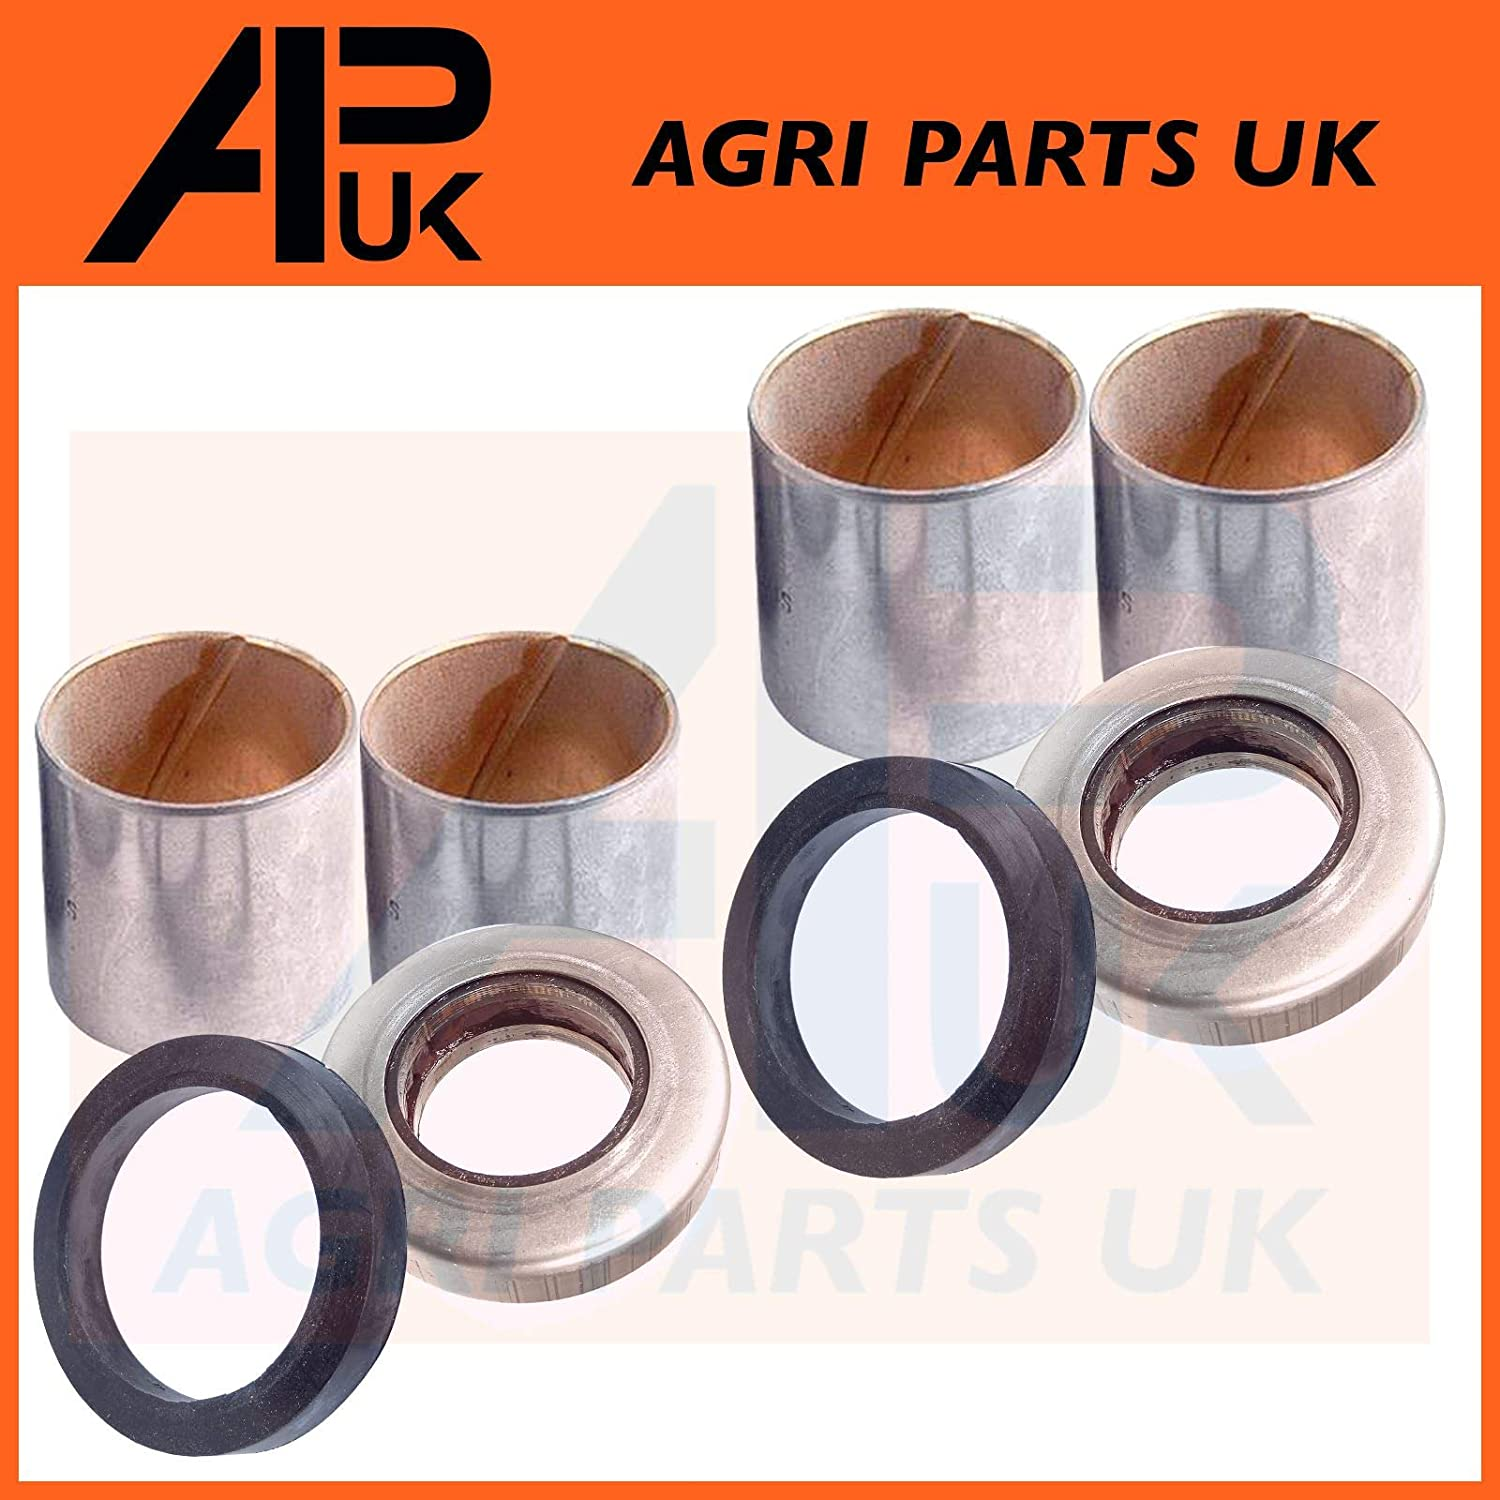 Spindle Thrust Stub Axle Kingpin Repair Kit compatible with Fordson Major Power Super Tractor